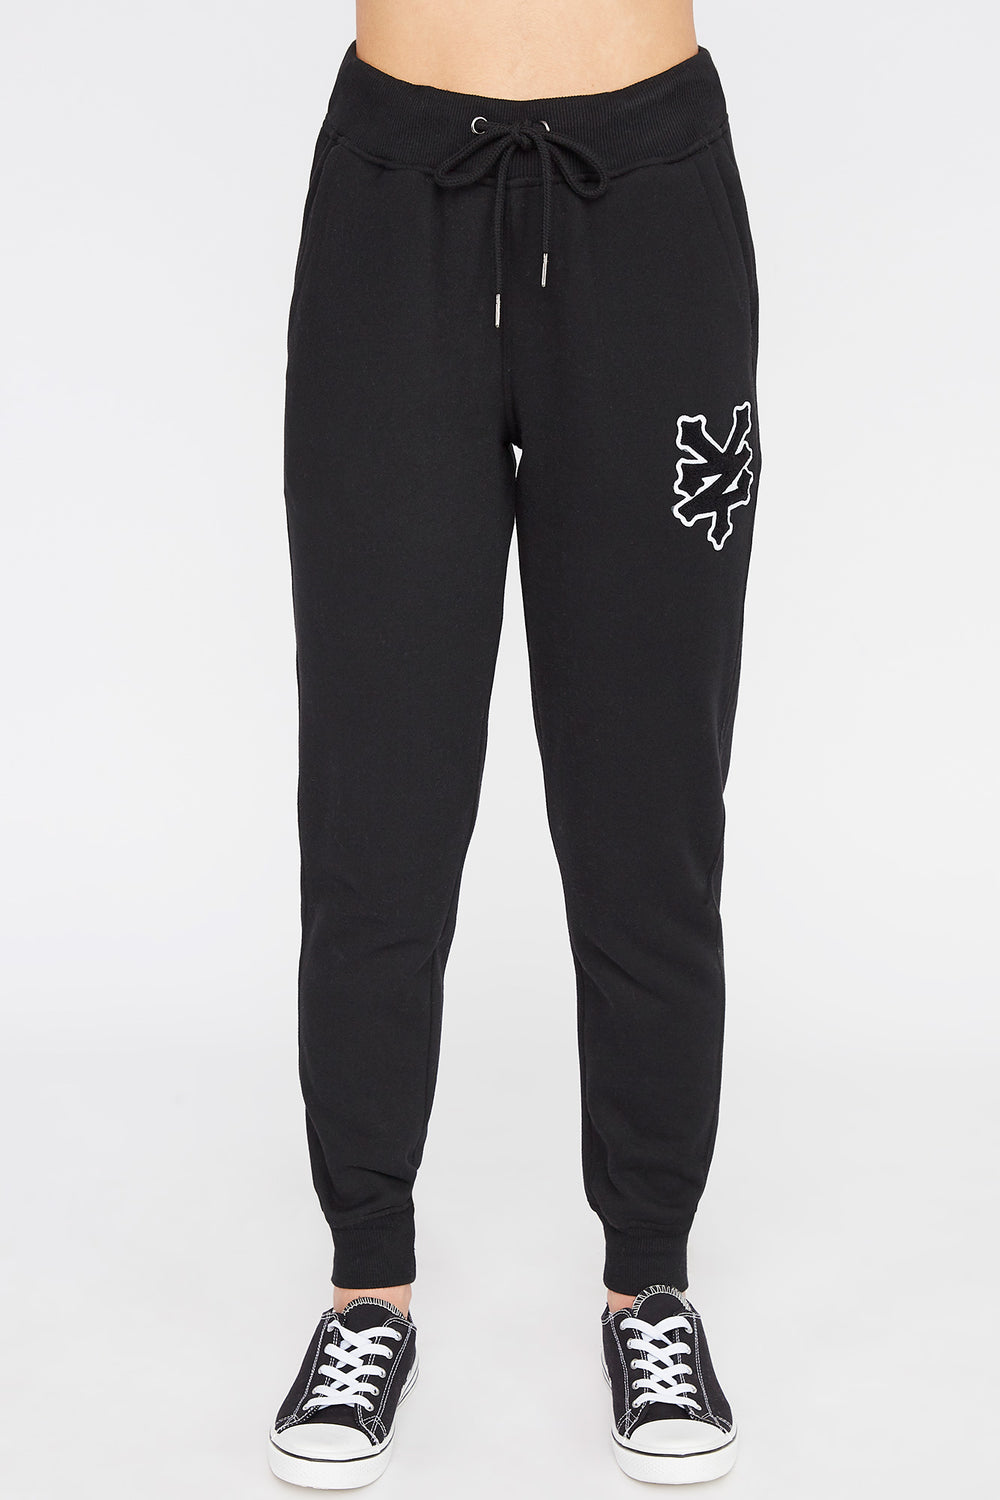 Zoo York Womens Chenille Patch Logo Joggers Black